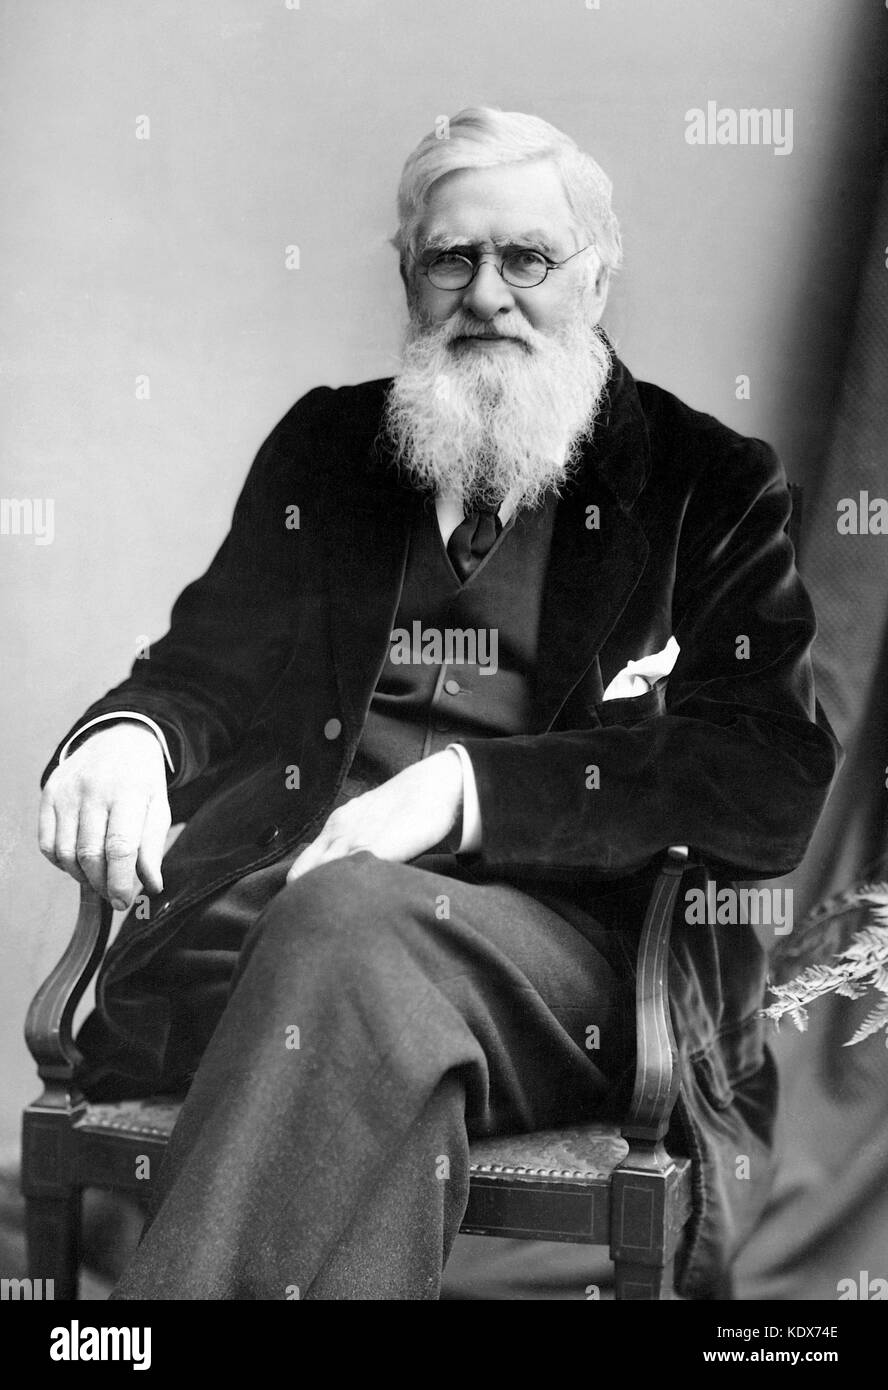 Alfred Russel Wallace, British naturalist, explorer, geographer, anthropologist, and biologist - Stock Image